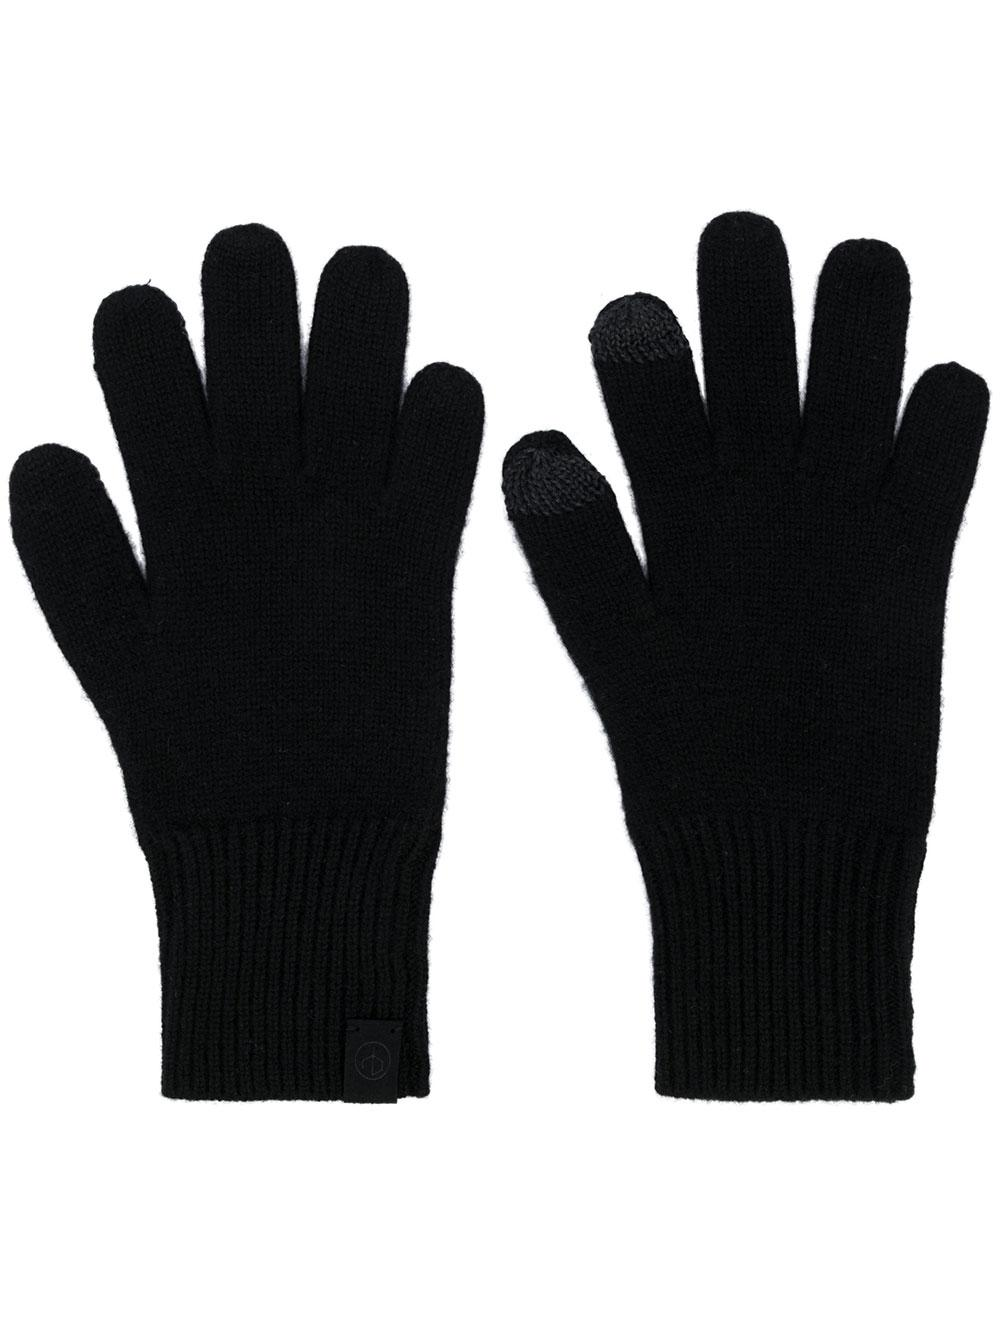 Logan Cashmere Gloves